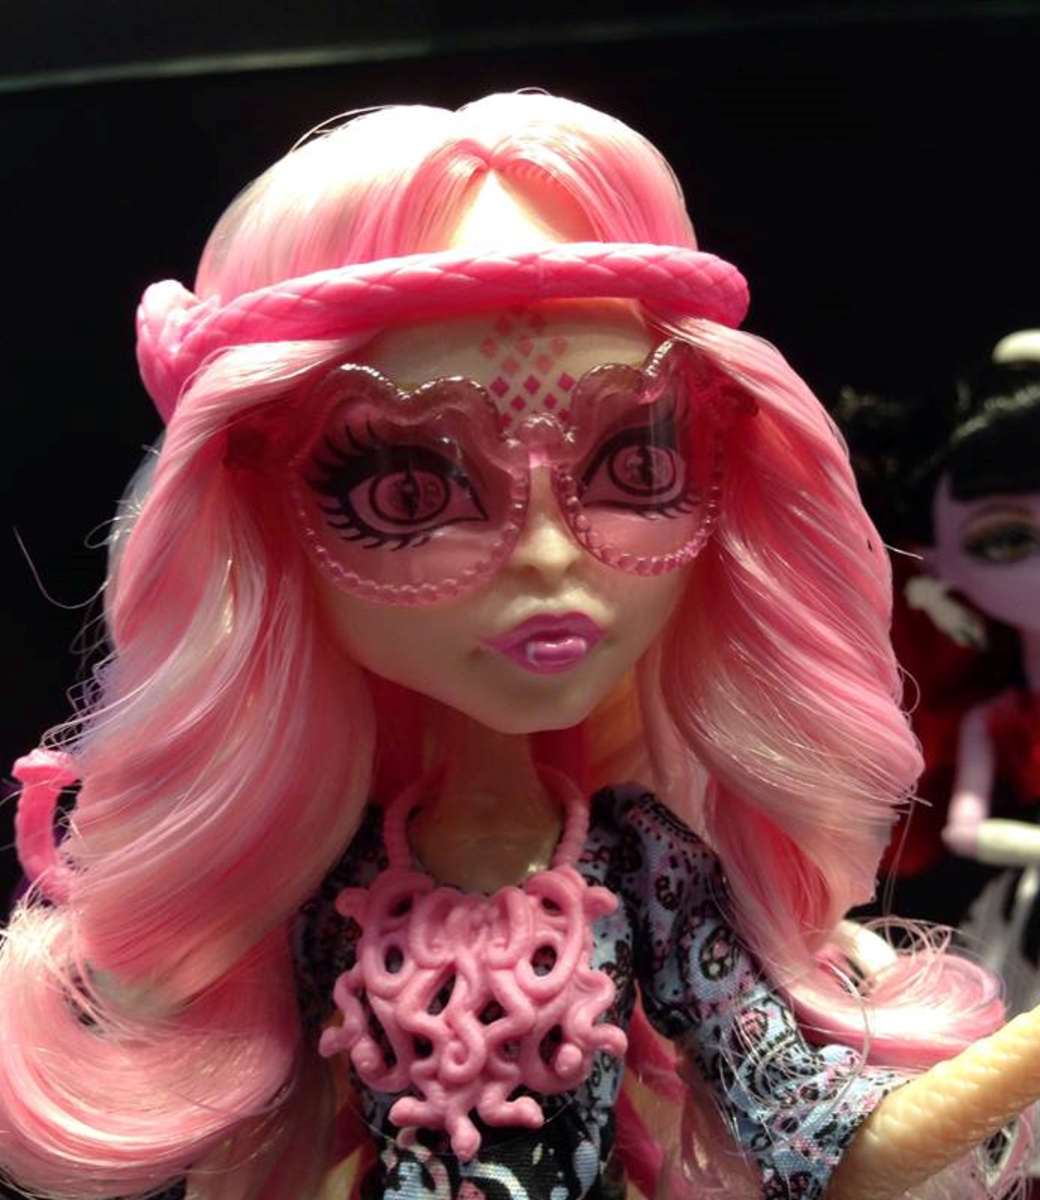 new-monster-high-dolls-for-late-2012-early-2013